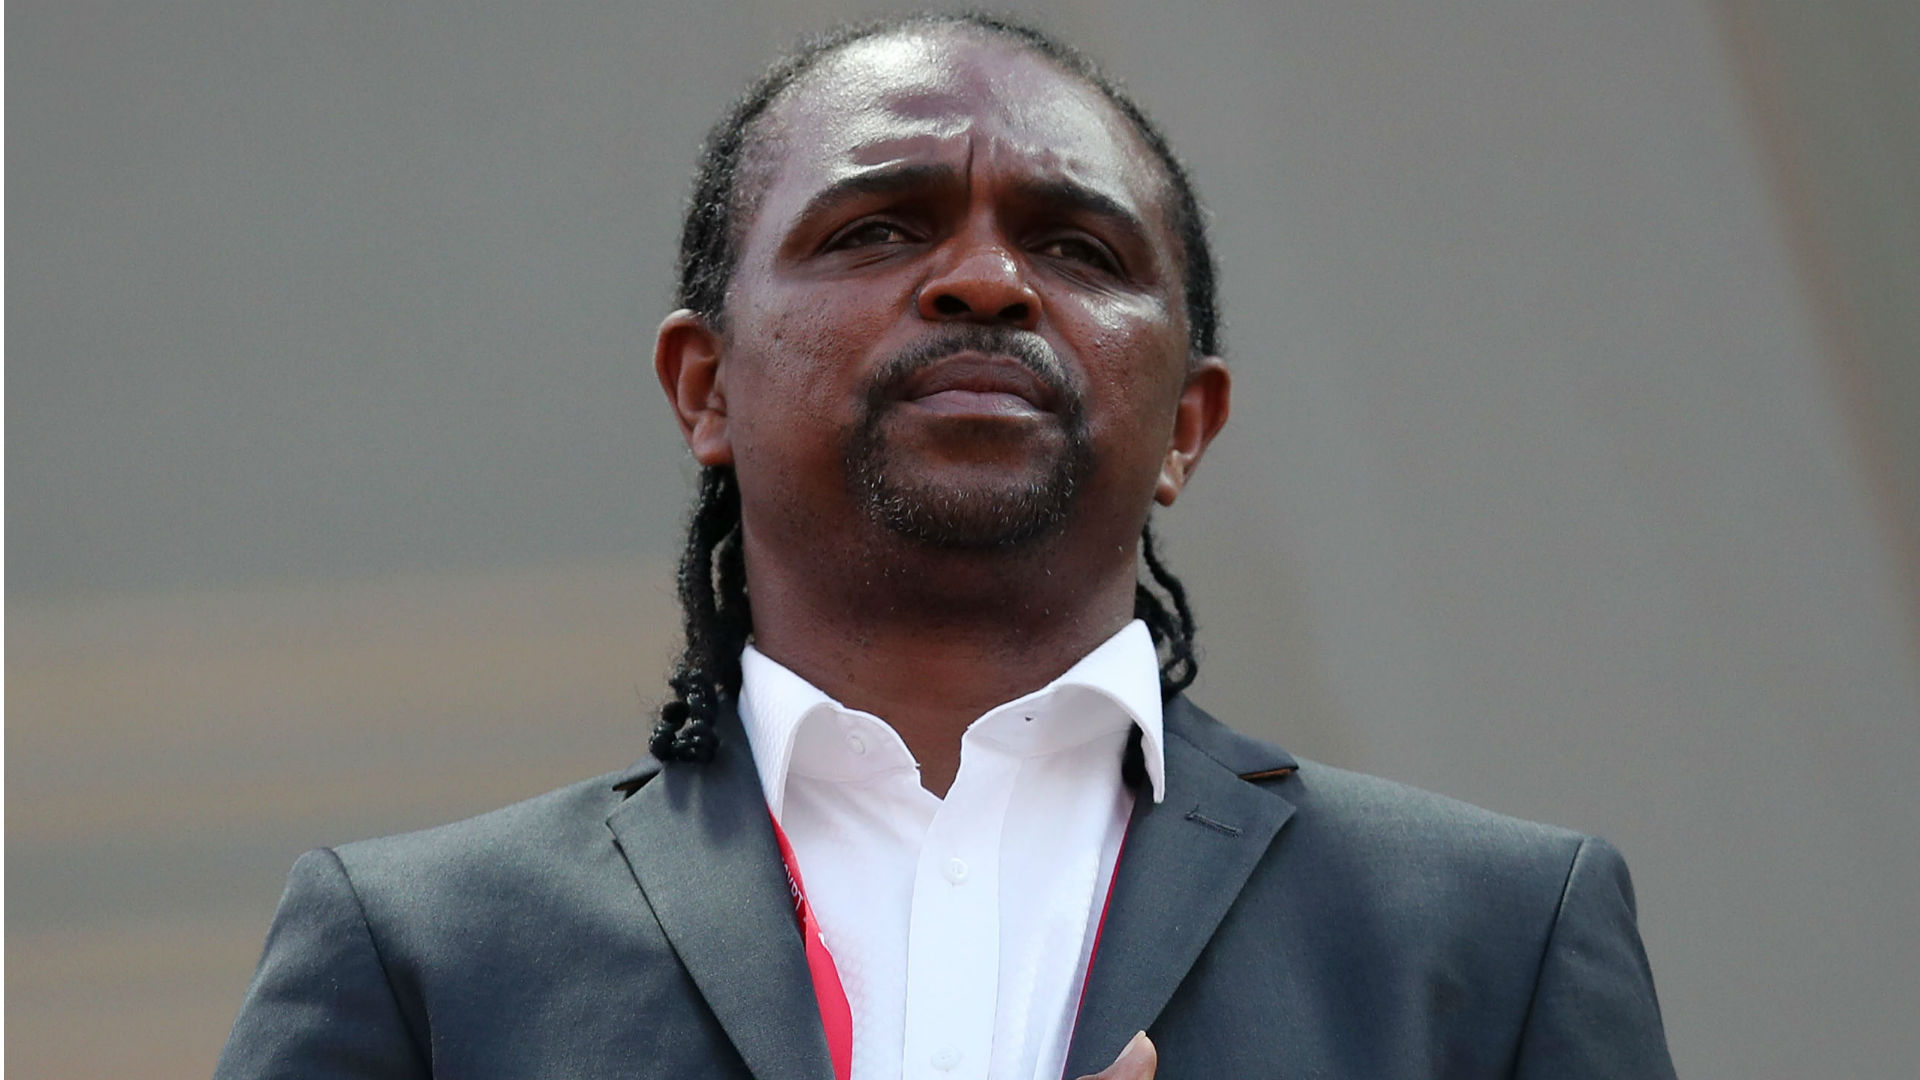 'Covid-19 is real' - Nigeria and Arsenal legend Kanu spreads awareness